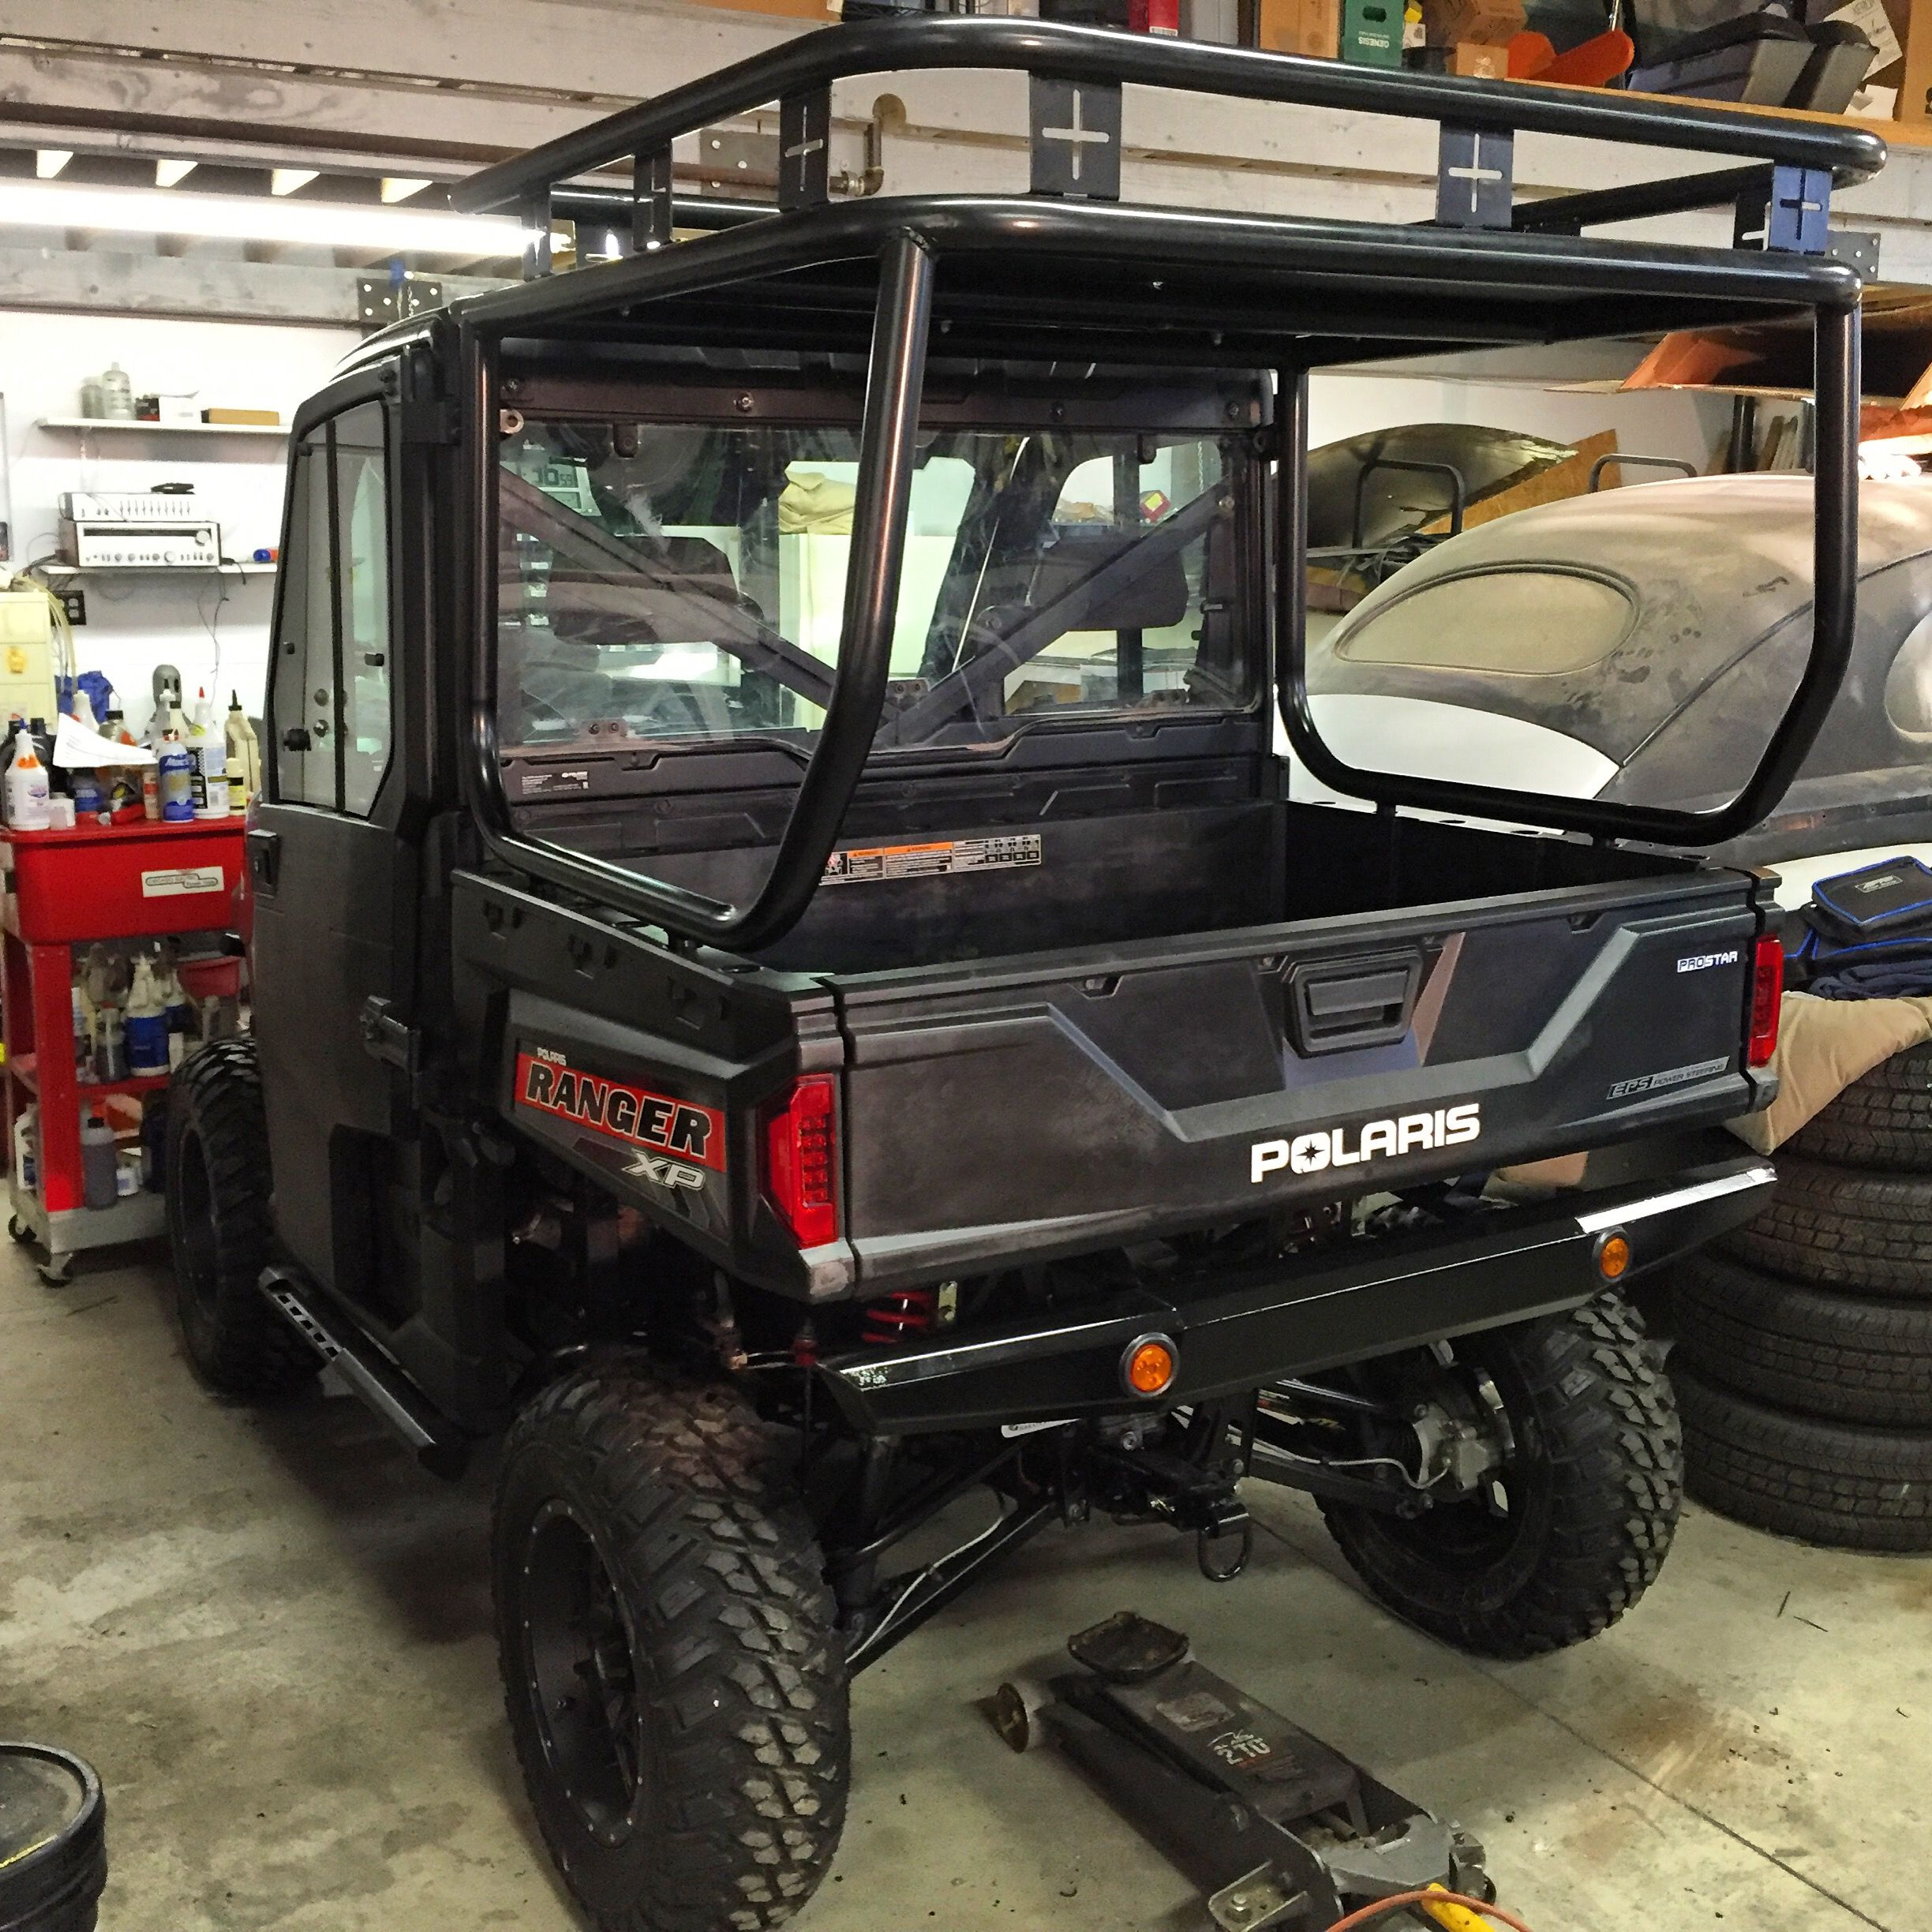 Roll Cage Roof And Safari Rack Installed On A Polaris